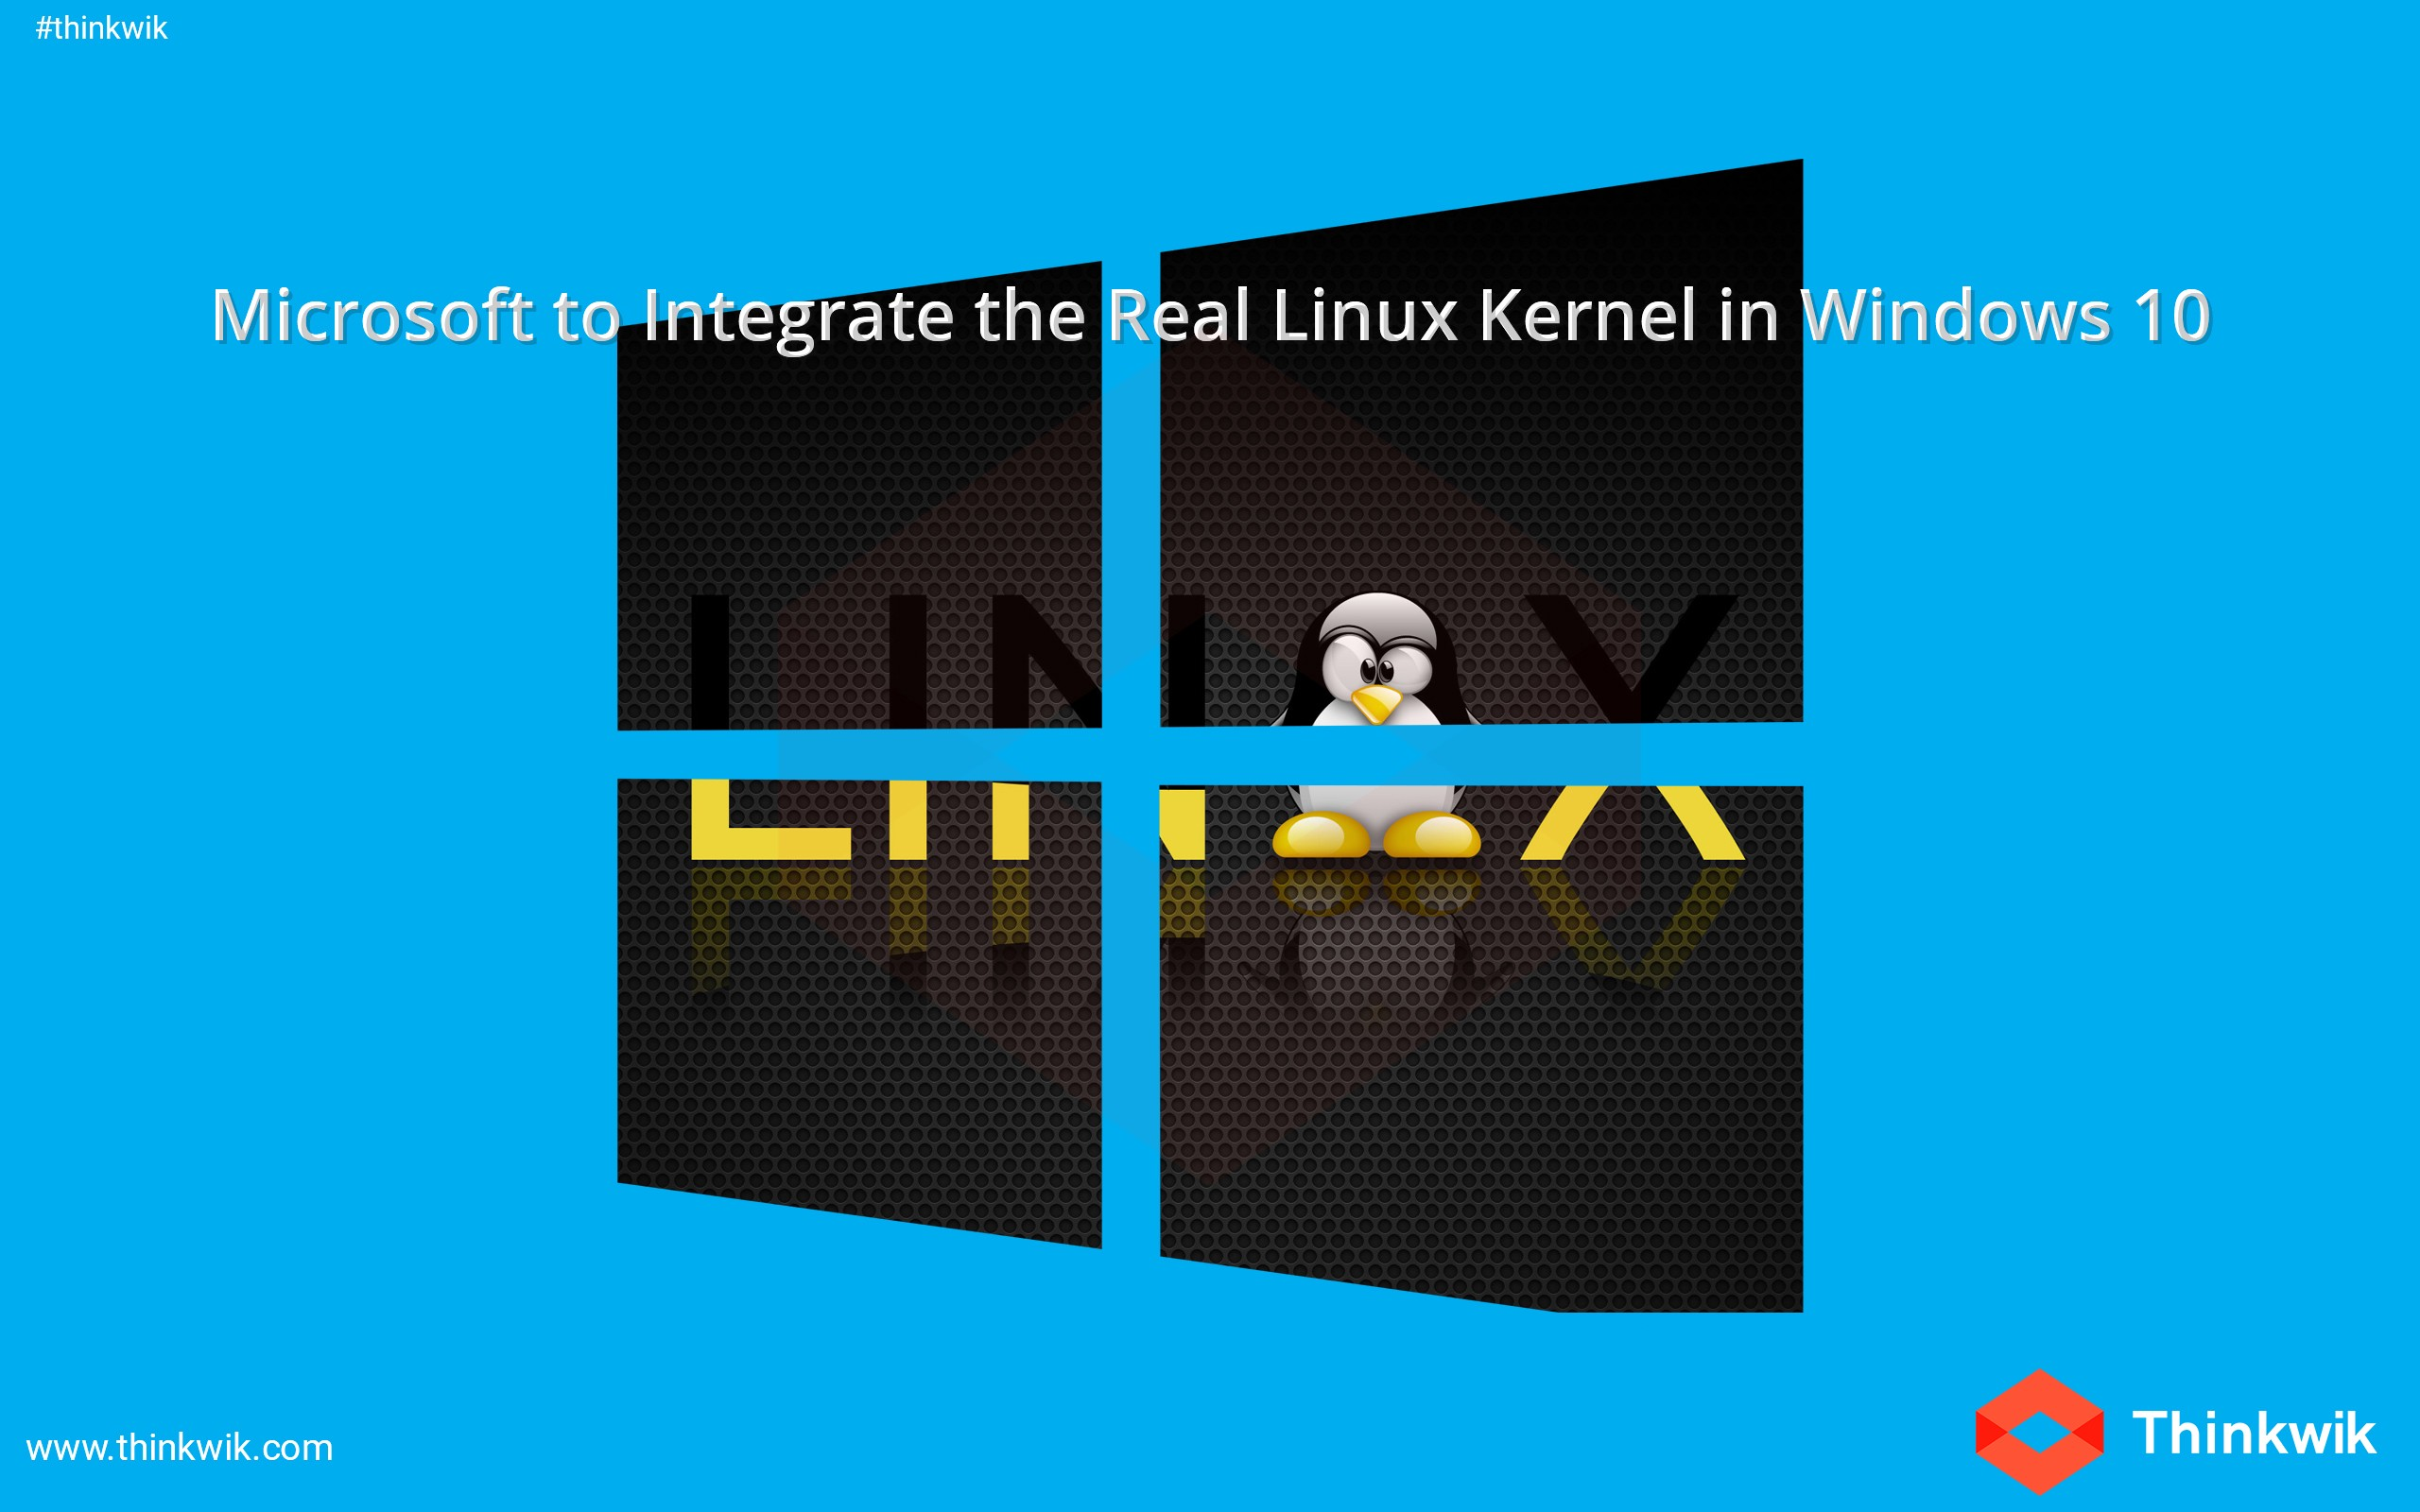 Microsoft to Integrate the Real Linux Kernel in Windows 10